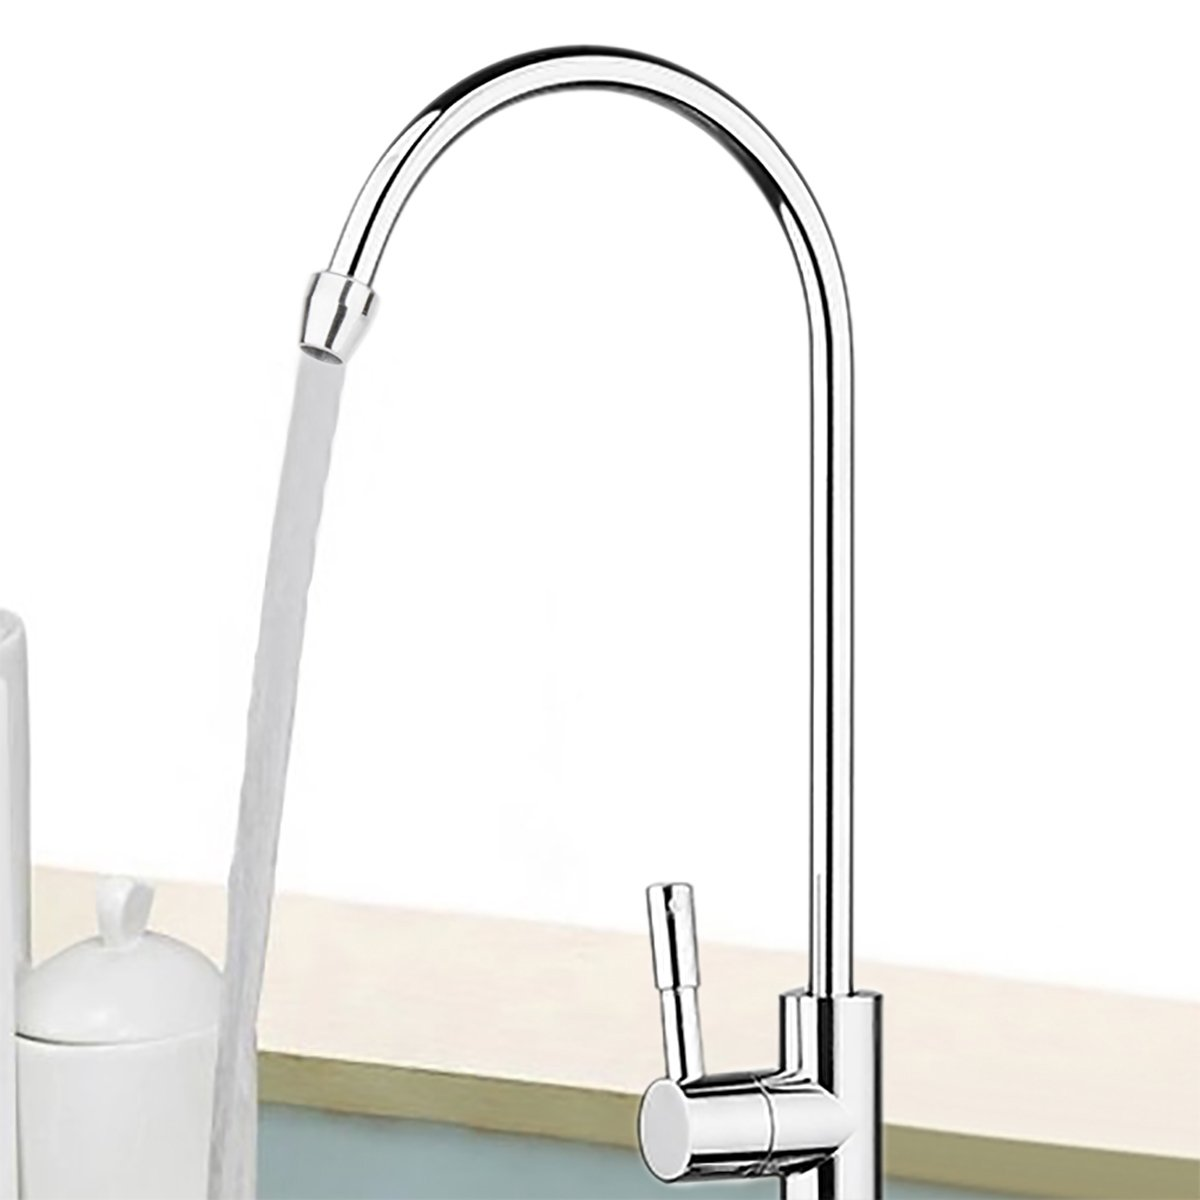 KINWAT 1pc 304 Stainless Steel Water Filter Faucet 1/4'' 360 Degree Chrome Osmosis Drinking RO Finish Reverse Sink Faucets by KINWAT (Image #4)